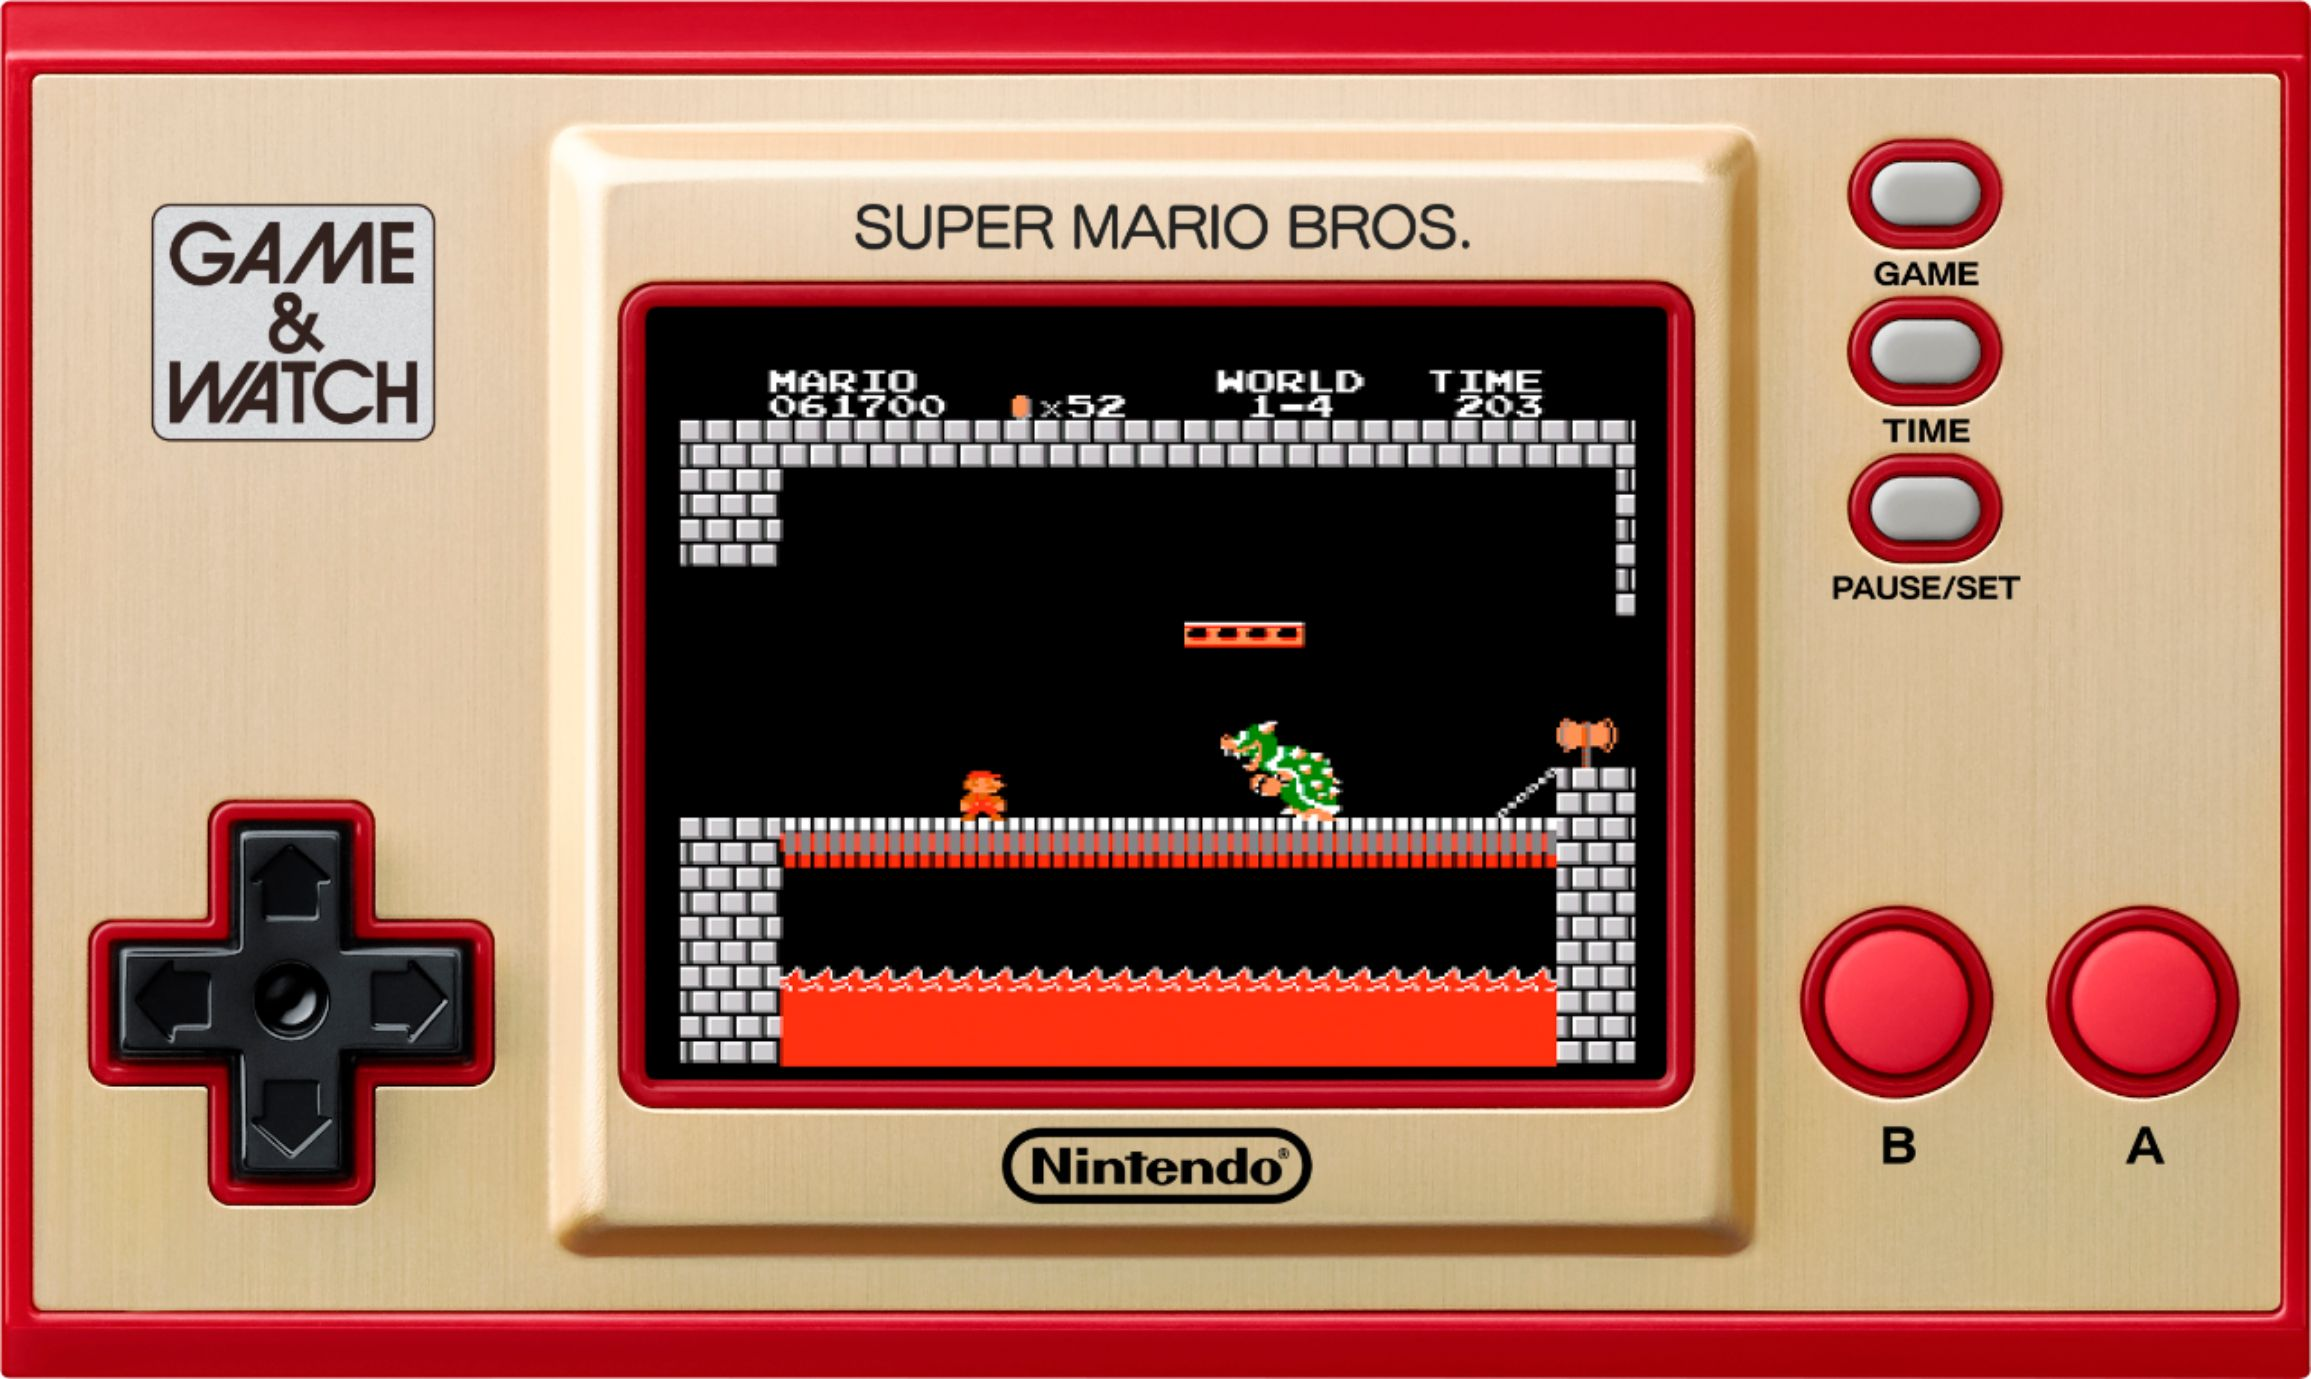 Nintendo's Game & Watch: Super Mario Bros. is a blast from the past!